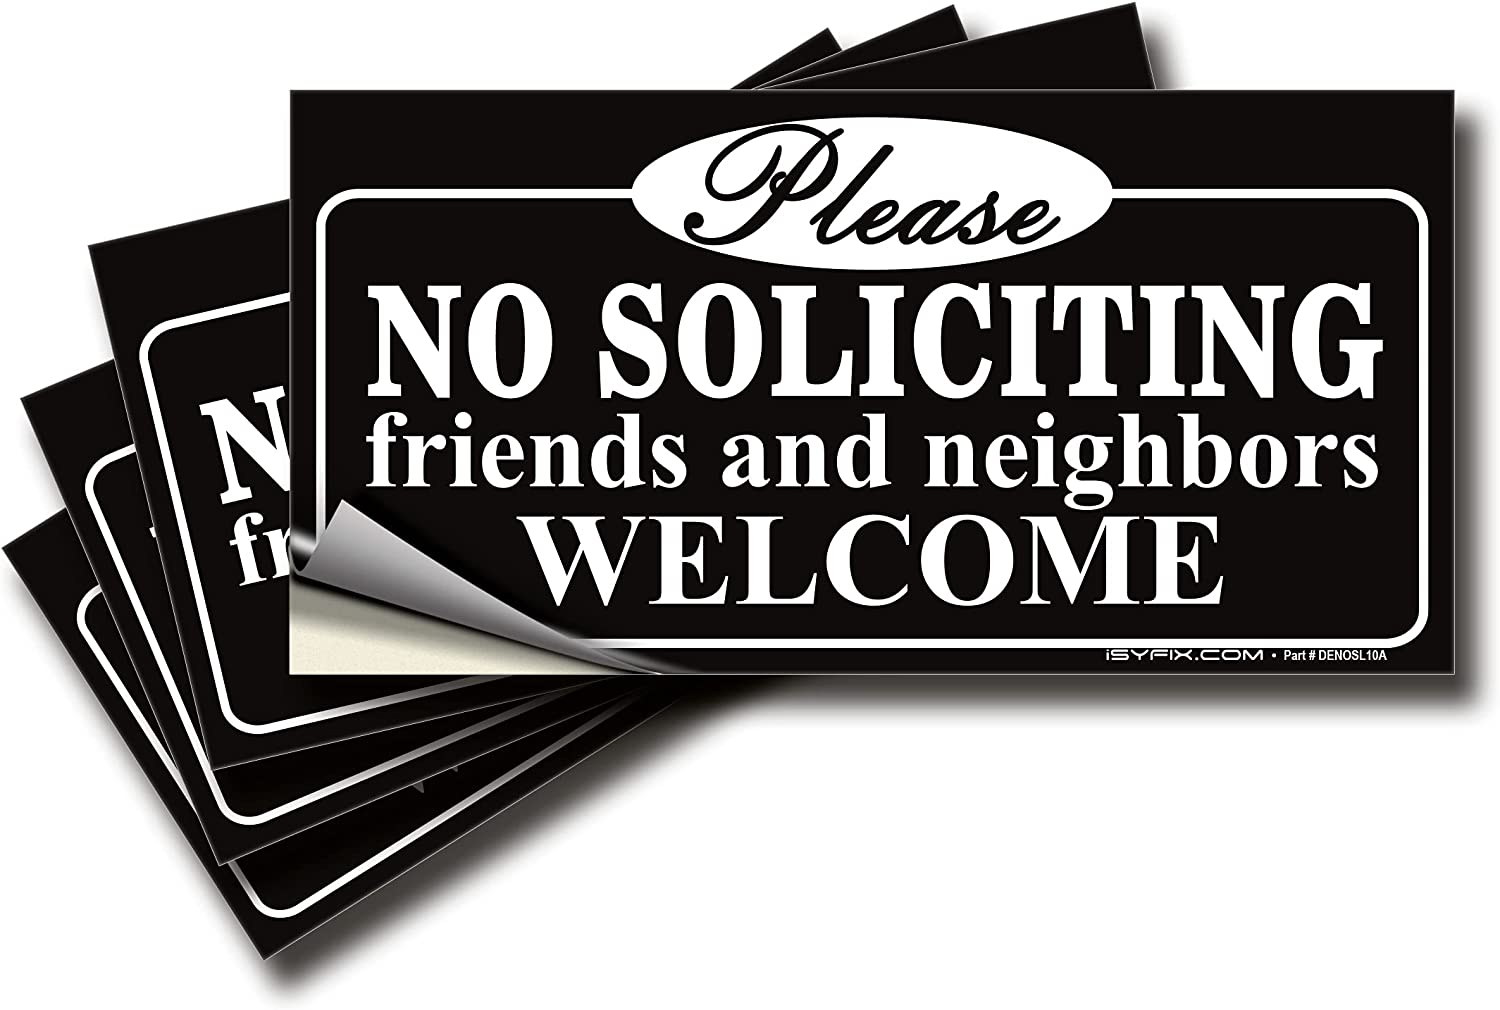 No Soliciting Sign Sticker for House, Home & Business – 4 Pack 7x3.5 inch – Premium Self-Adhesive Vinyl, Laminated for Ultimate UV, Weather, Scratch, Water and Fade Resistance, Indoor & Outdoor